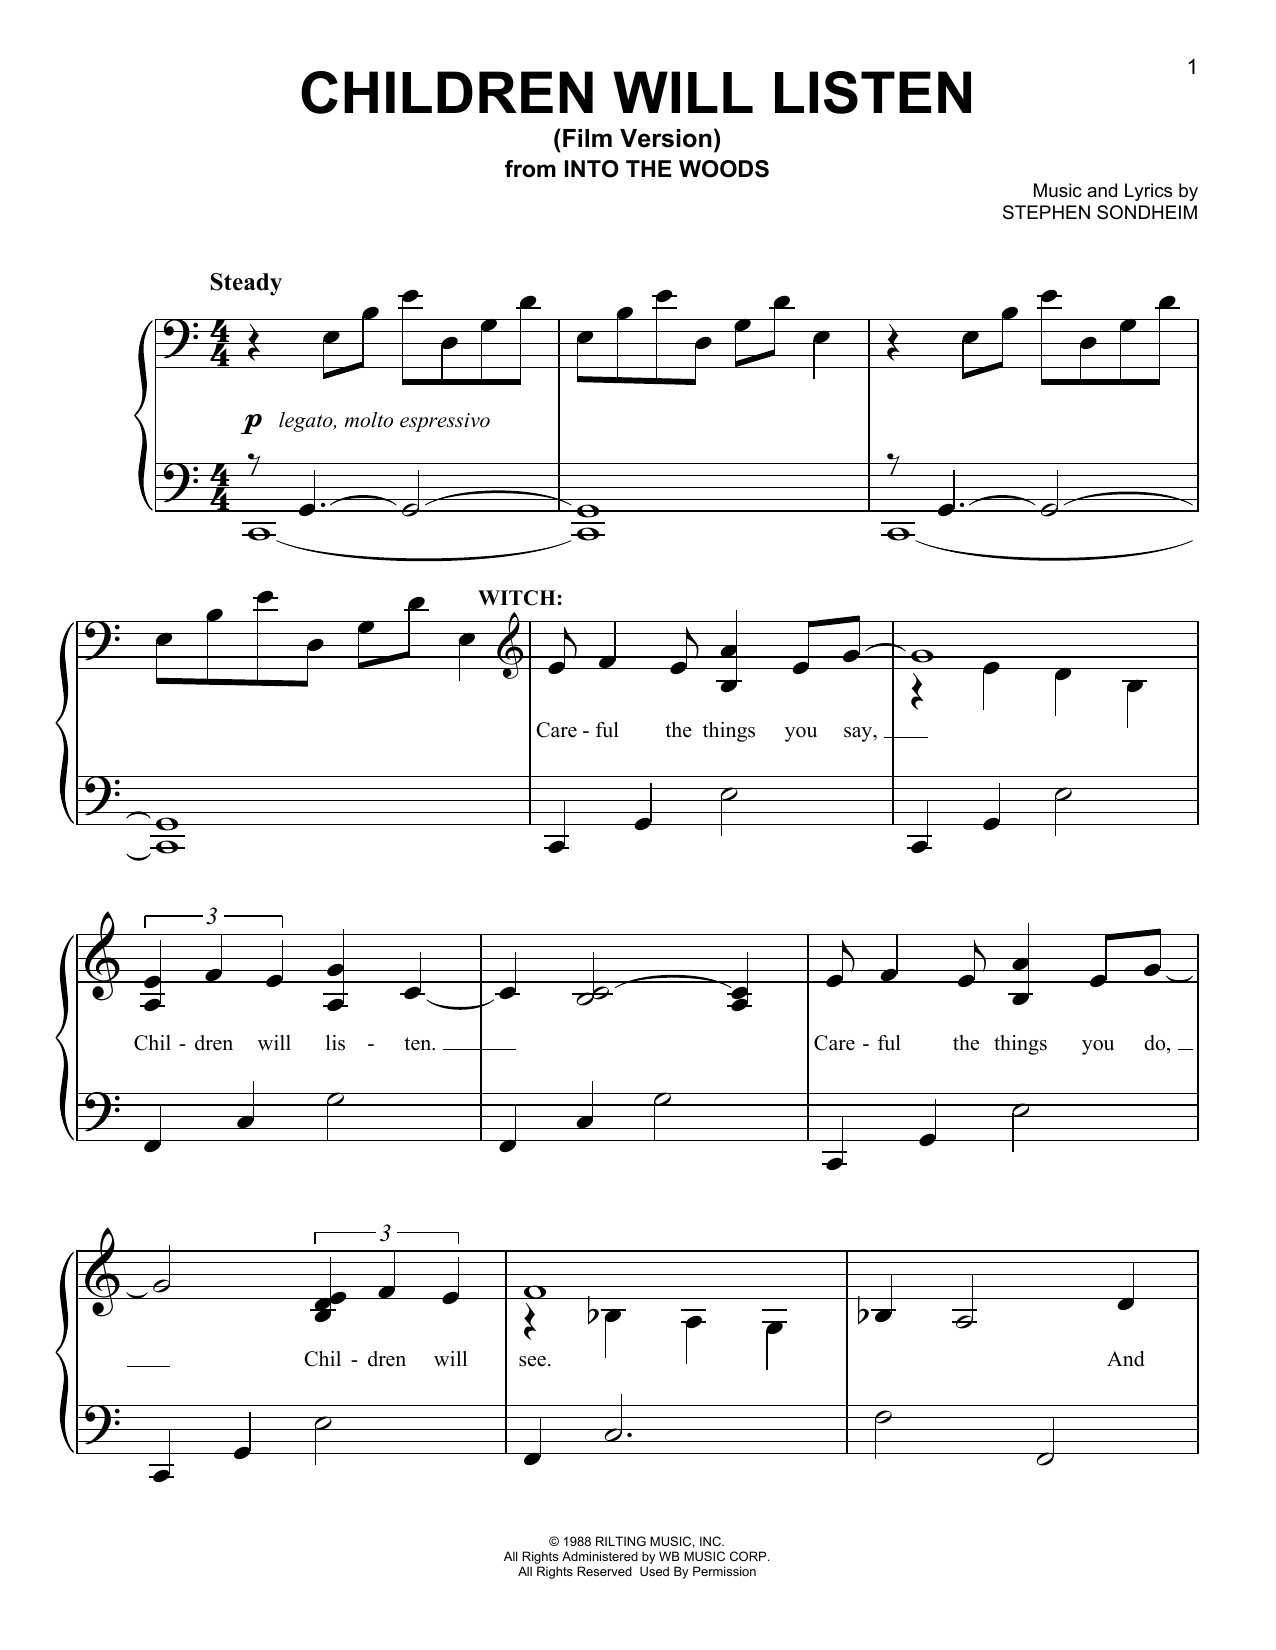 Children Will Listen (from 'Into The Woods - Film Version') Sheet Music